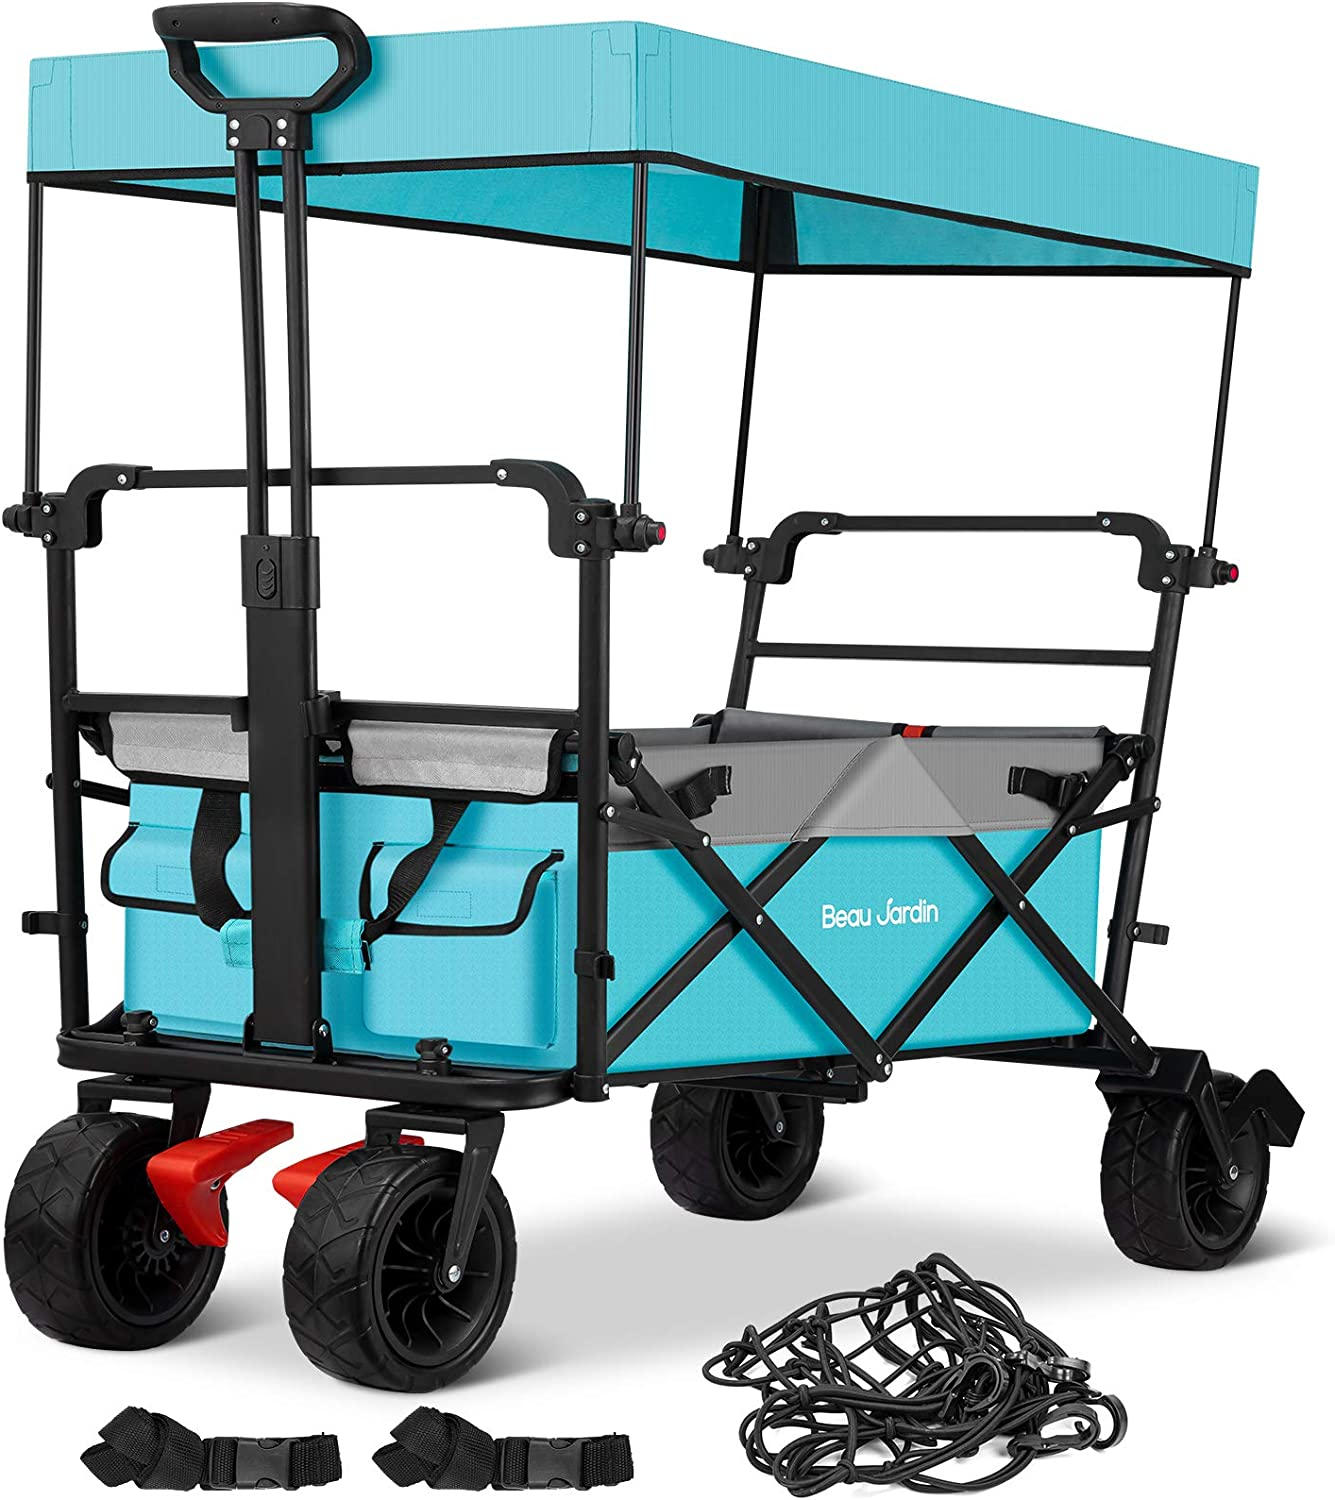 BEAU JARDIN Folding Wagon Cart with 1 Nylon Net 2 Straps Canopy Collapsible Utility Camping Grocery Canvas Fabric Sturdy Portable Rolling Buggies Outdoor Garden Heavy Duty Shopping Wide Wheel Blue .